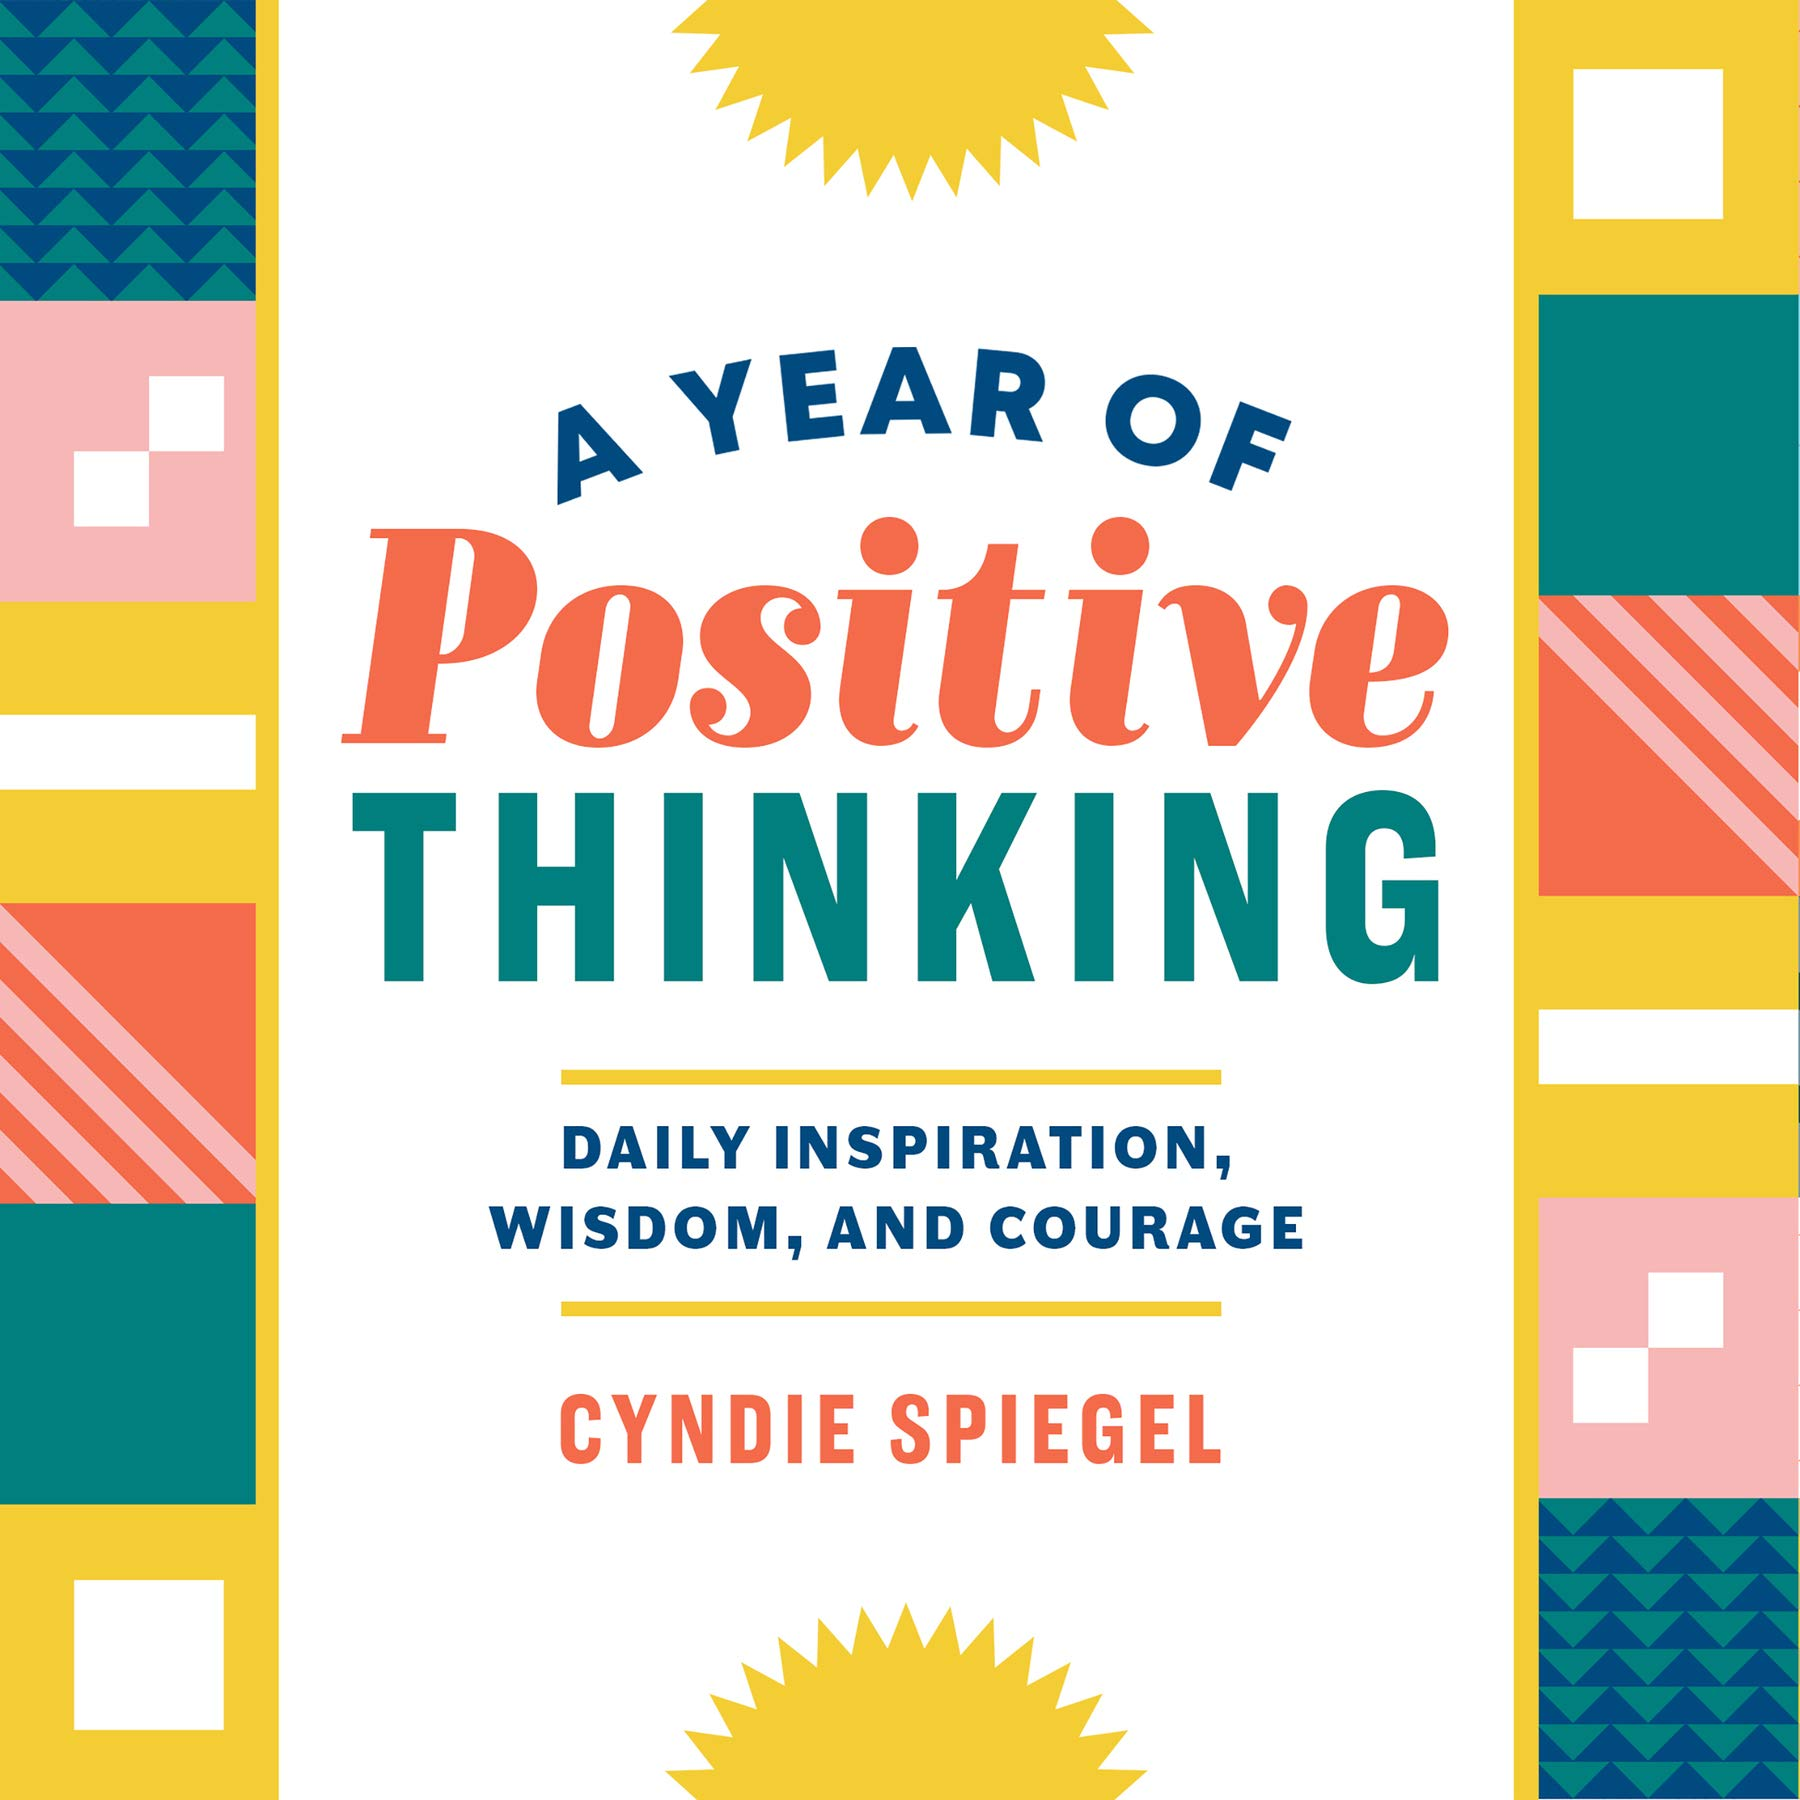 A Year Of Positive Thinking: Daily Inspiration, Wisdom